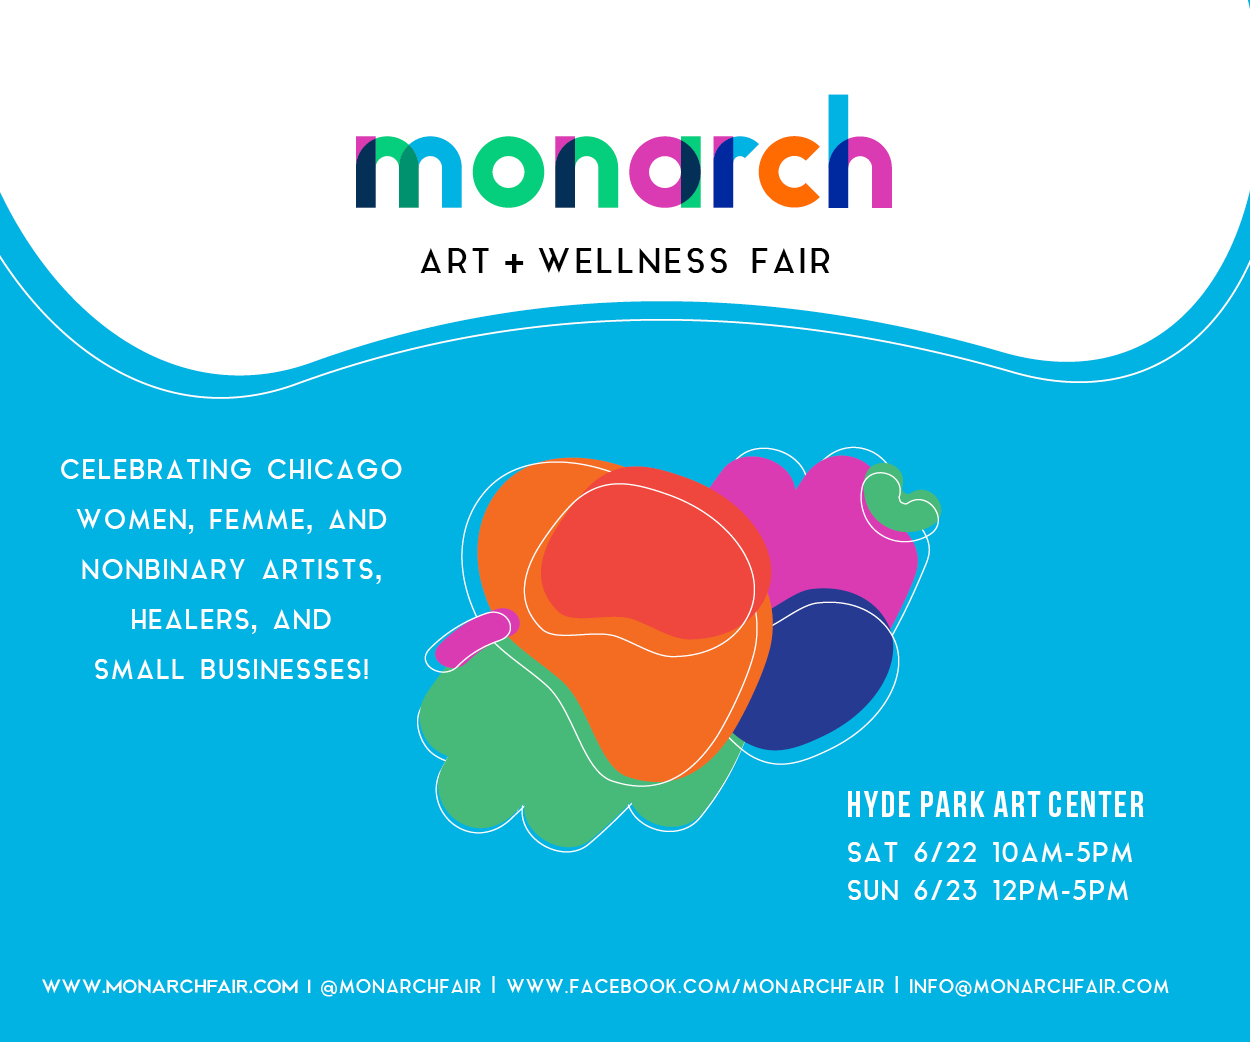 Monarch Art + Wellness Fair